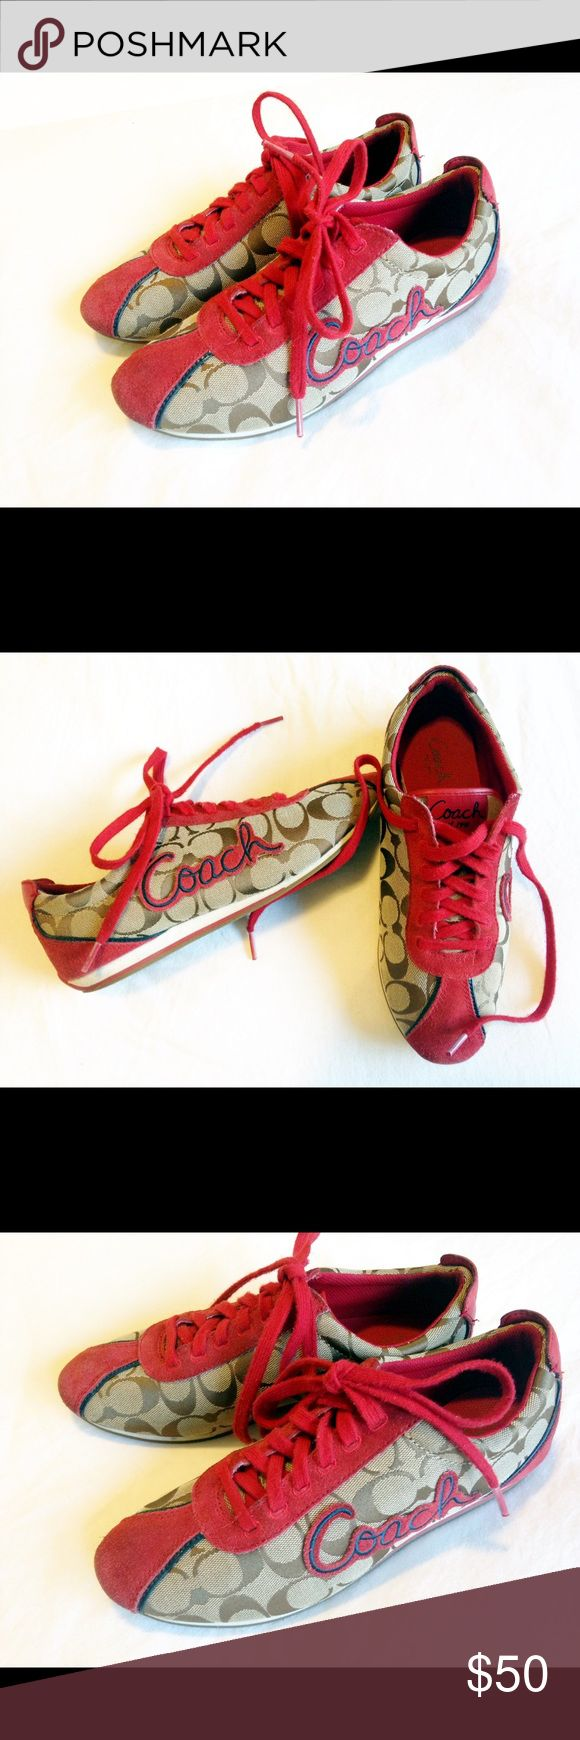 Coach tennis shoes, style Devin, size 8.5 Coach tennis shoes with lots of wear to go, Iconic red/navy, style is Devin A1715. Size 8.5. Comfortable and stylish all in one, would be an awesome Summer staple! Plus the red really  does make them stand-out Coach Shoes Sneakers